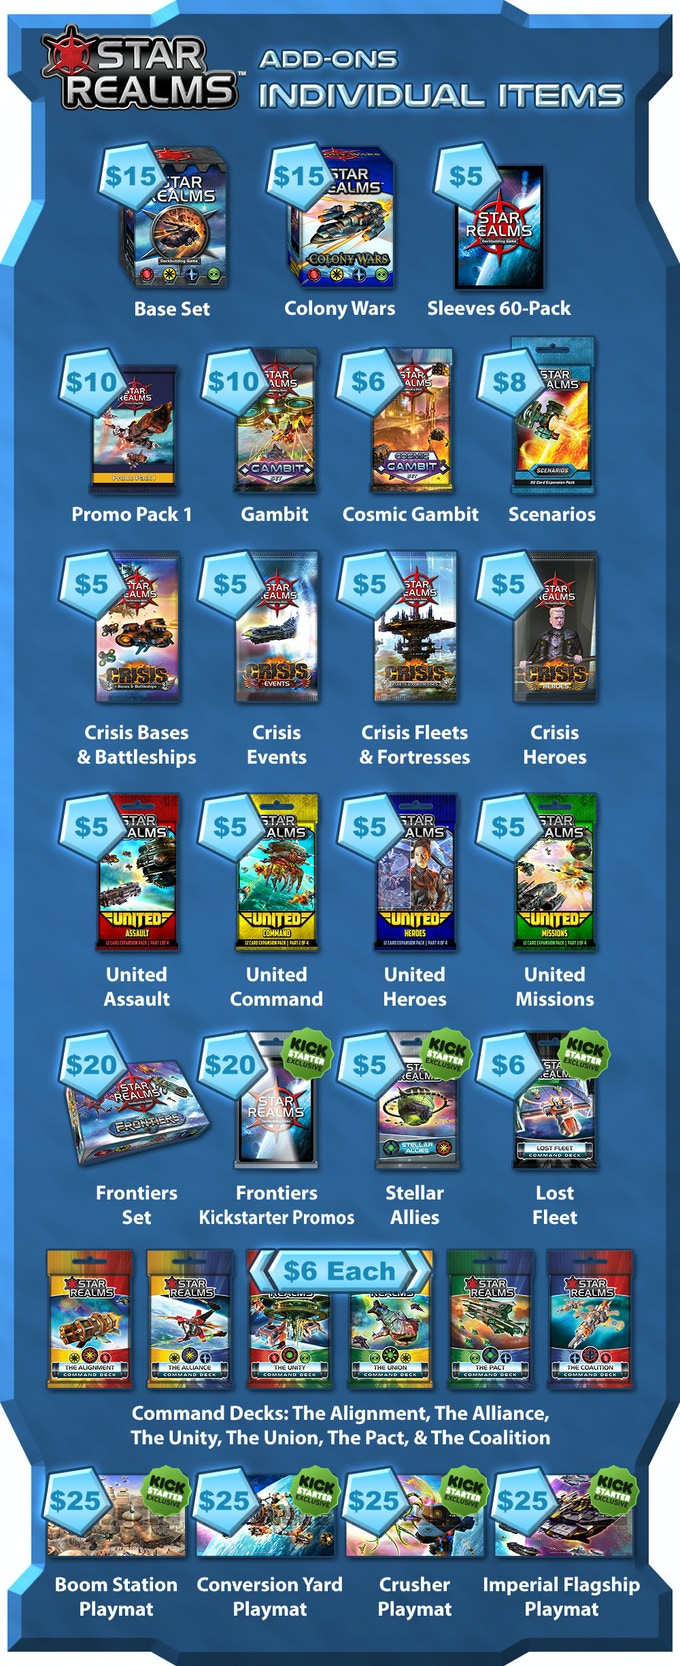 Add some Star Realms to your reward!